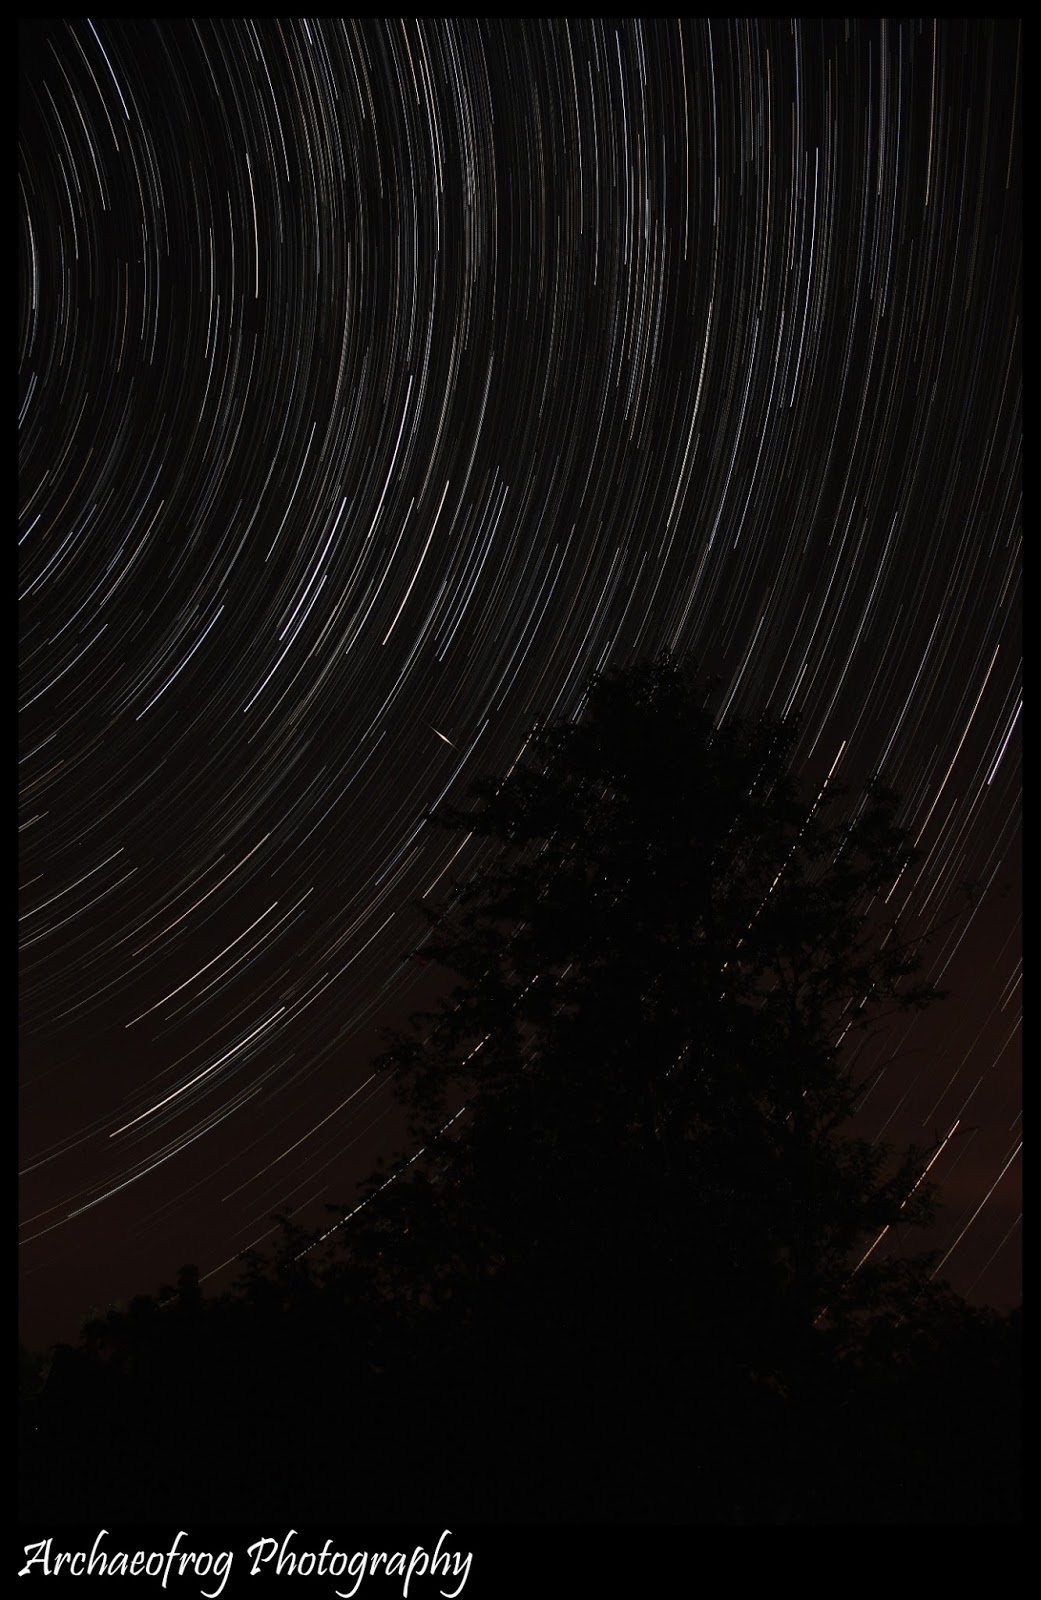 Star Trails created by Stacking | Boost Your Photography